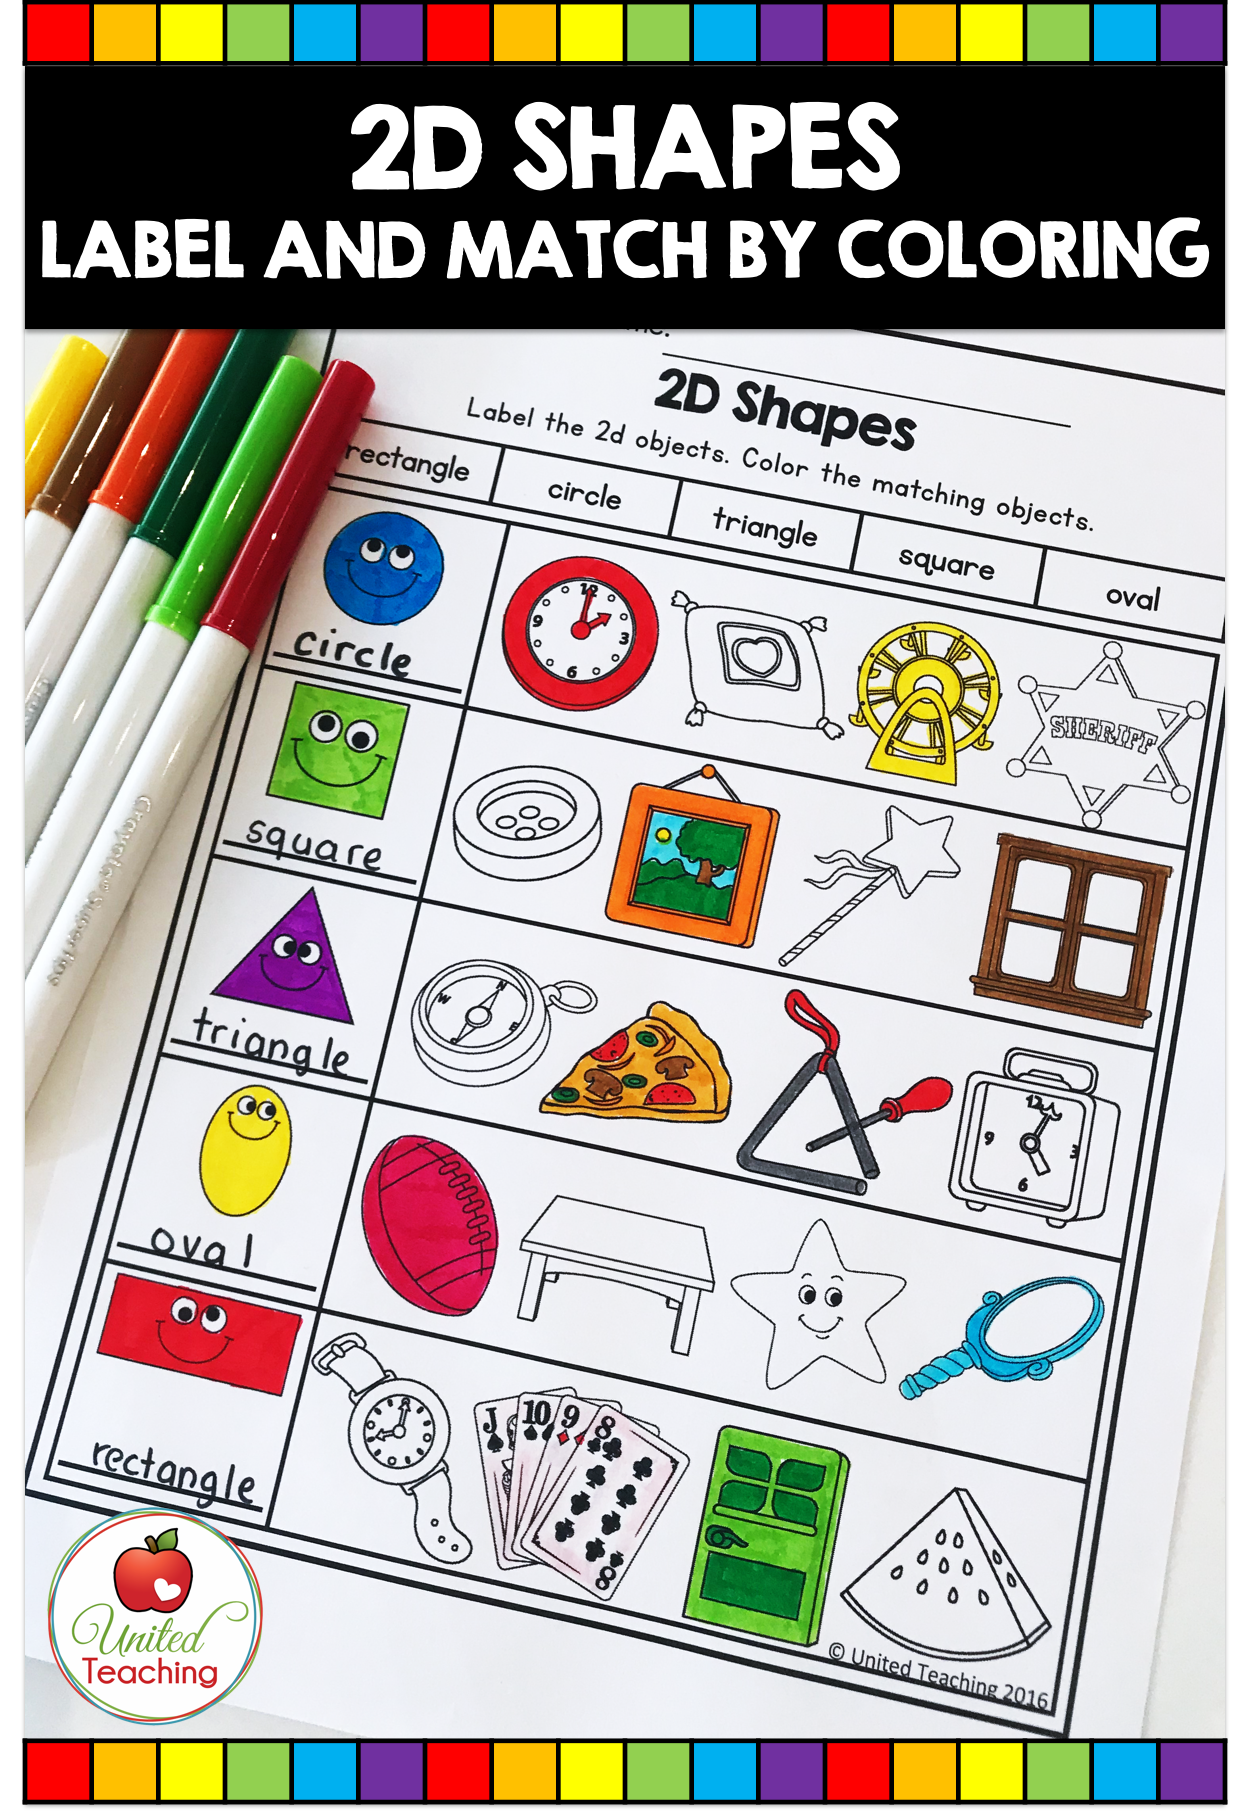 FALL MATH ACTIVITIES (1ST GRADE) - United Teaching   Shapes worksheets [ 1812 x 1250 Pixel ]